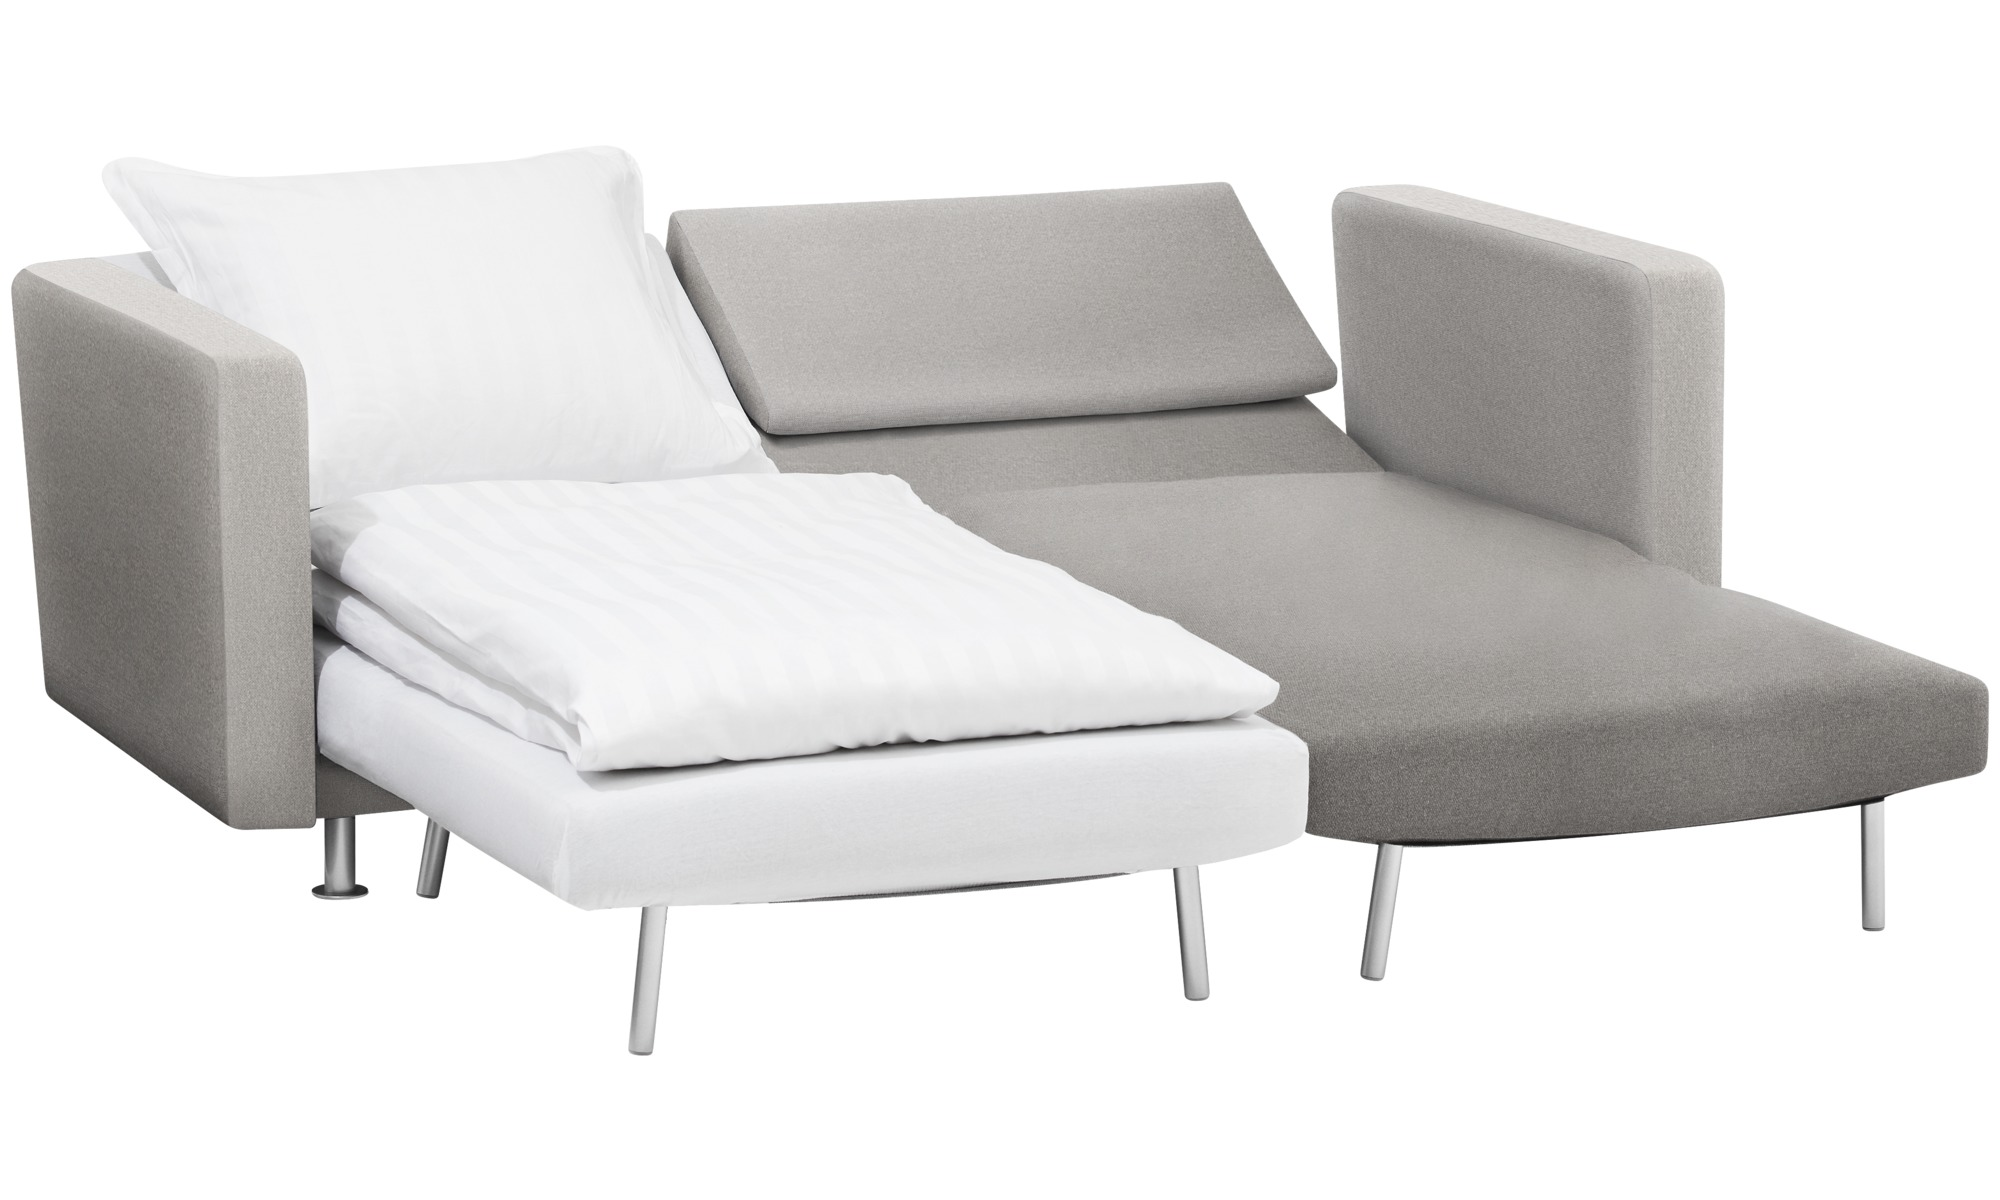 Sleeping Beds Melo Boconcept 2 Function With Reclining Sofa And fy76bg